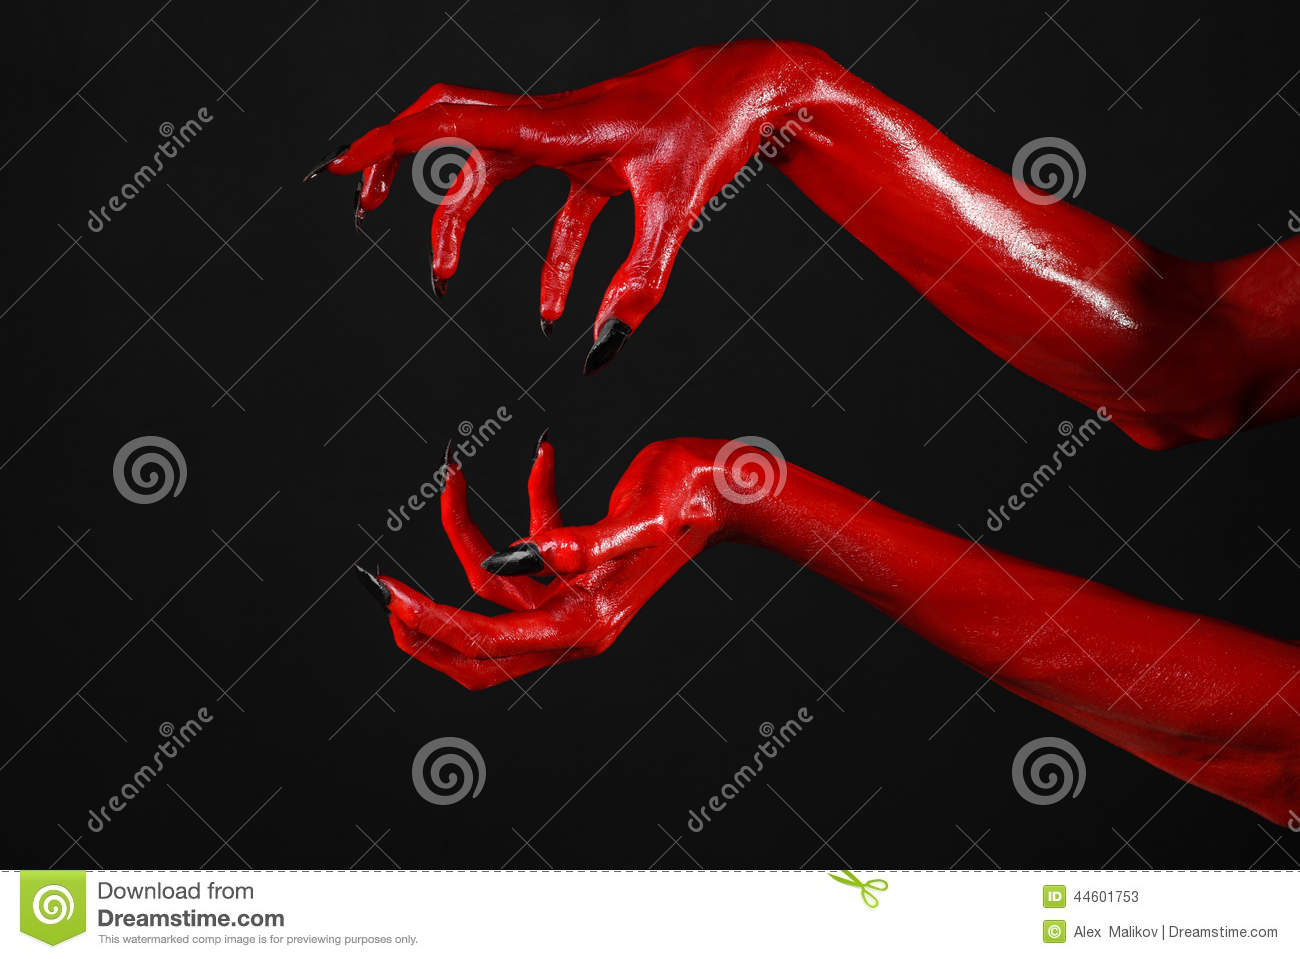 red devil u0026 39 s hands with black nails  red hands of satan  halloween theme  on a black background